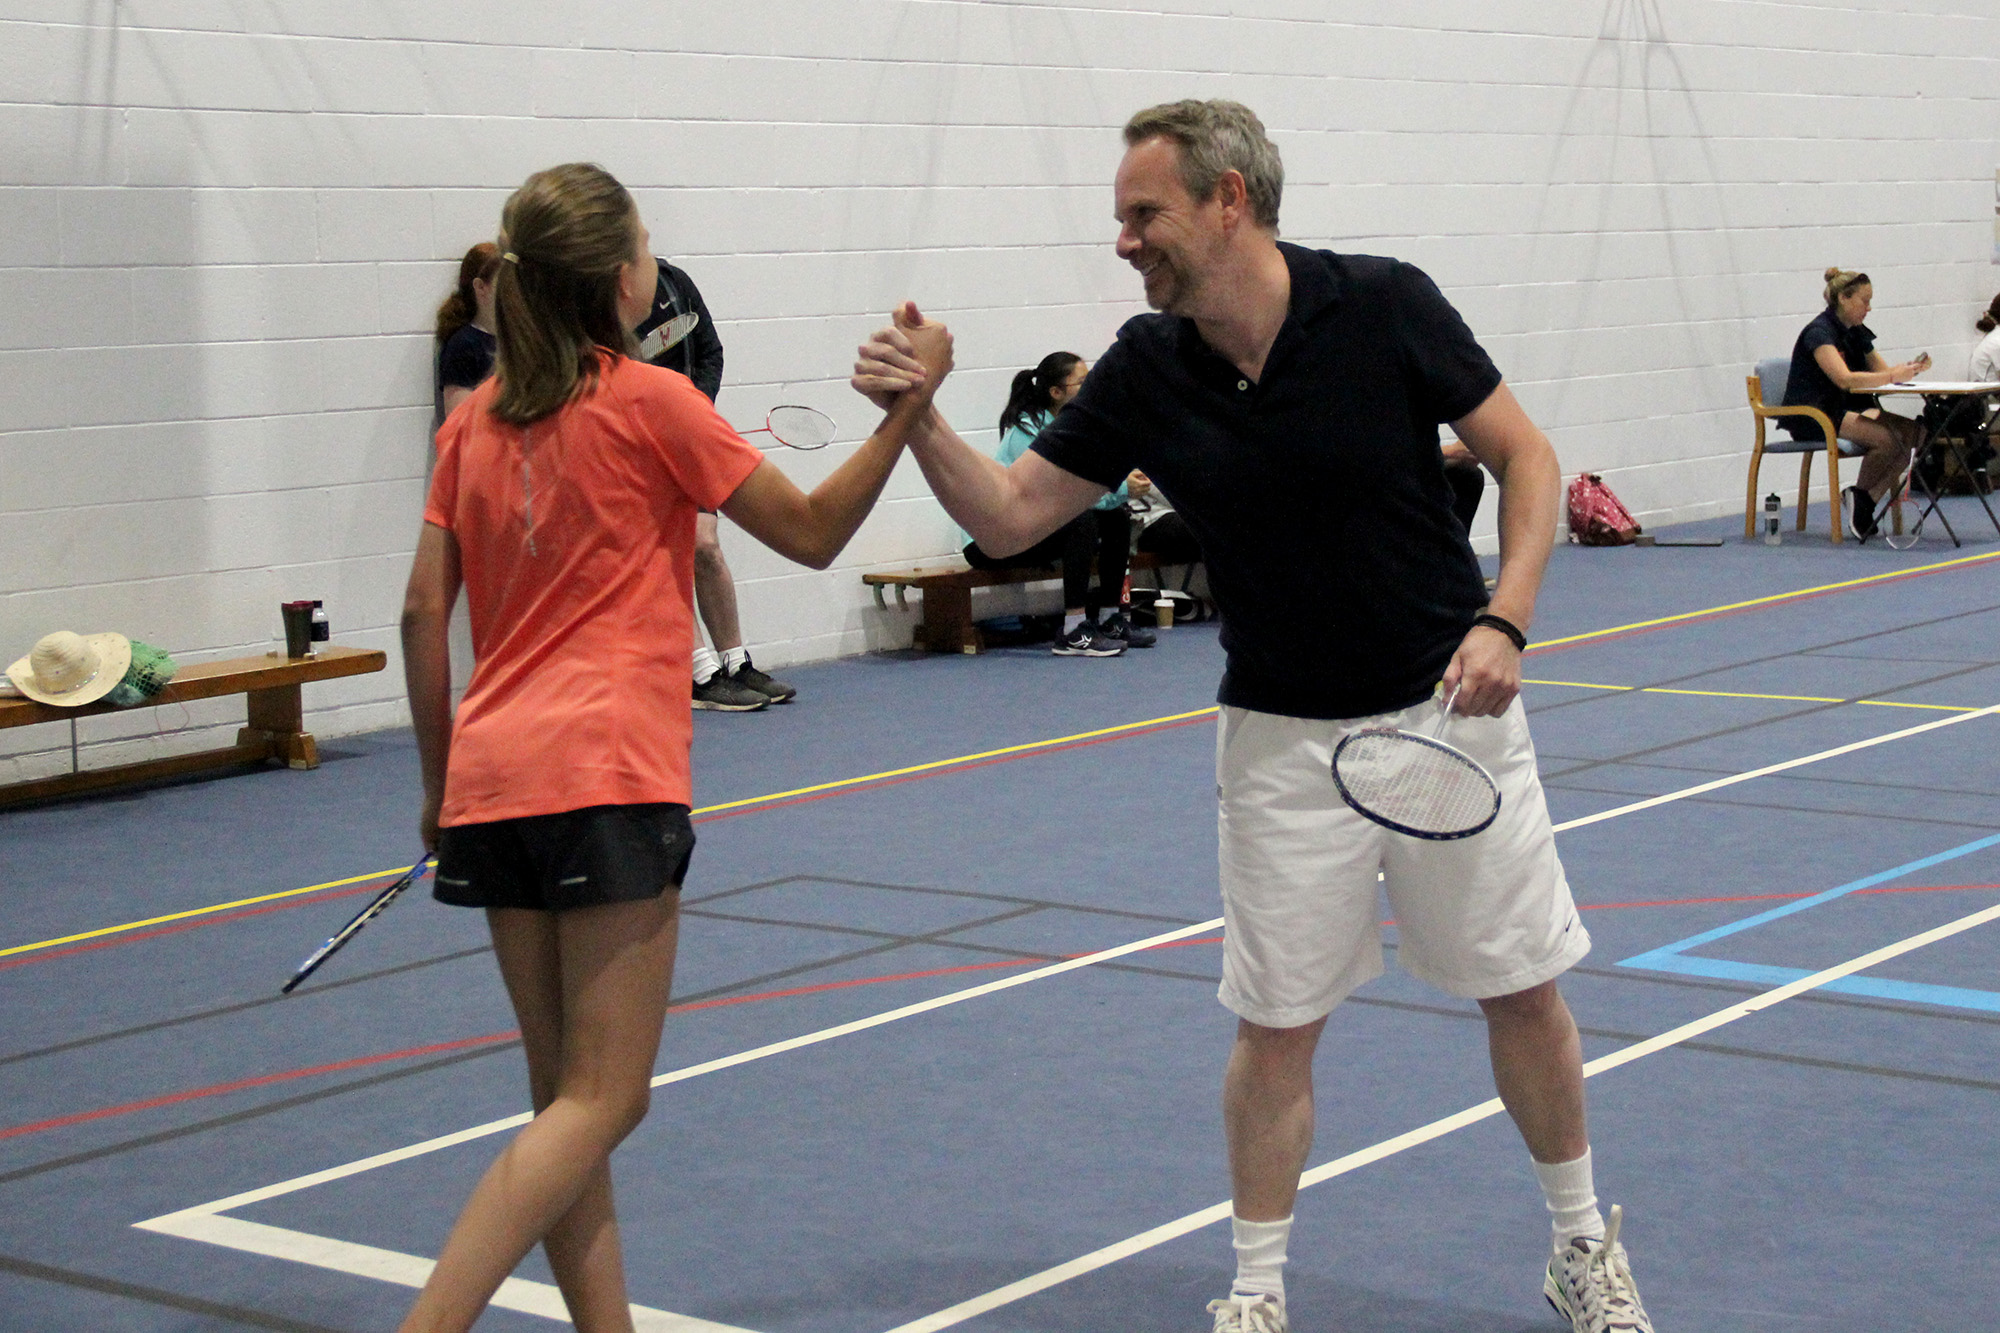 Daughter and parent playing badminton